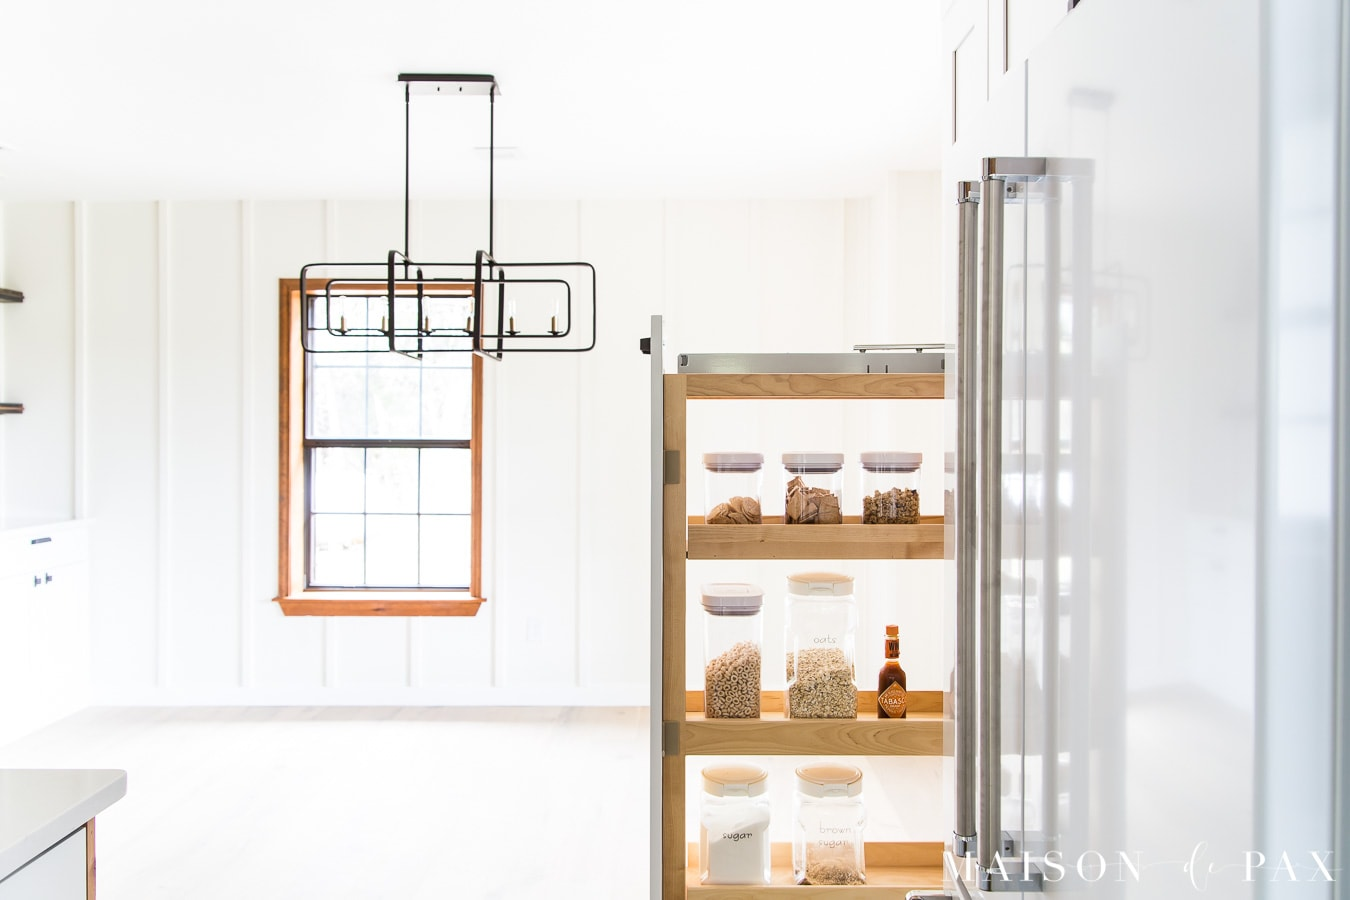 organized pantry pull out drawer shelves | Maison de Pax